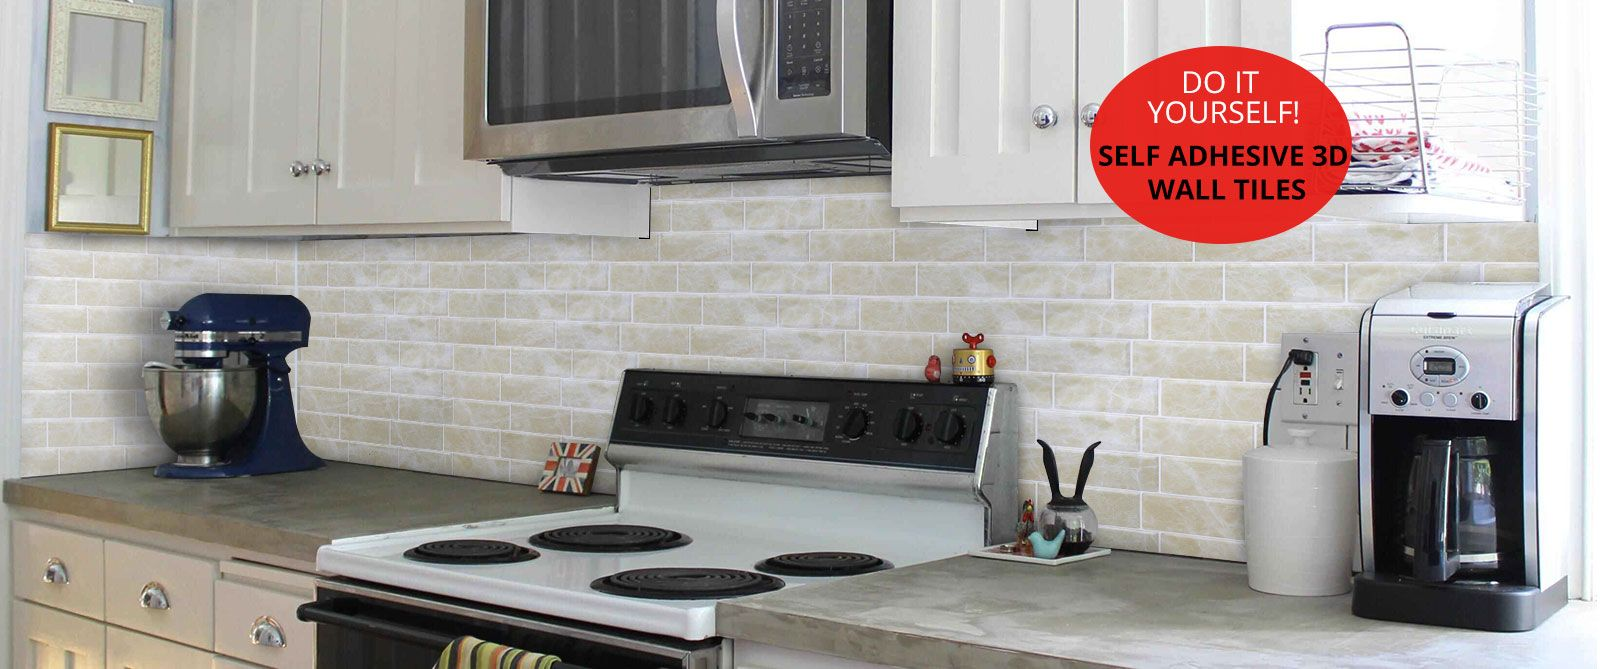 Self Adhesive 3d Wall Tiles For Kitchen Backsplash Peel And Stick